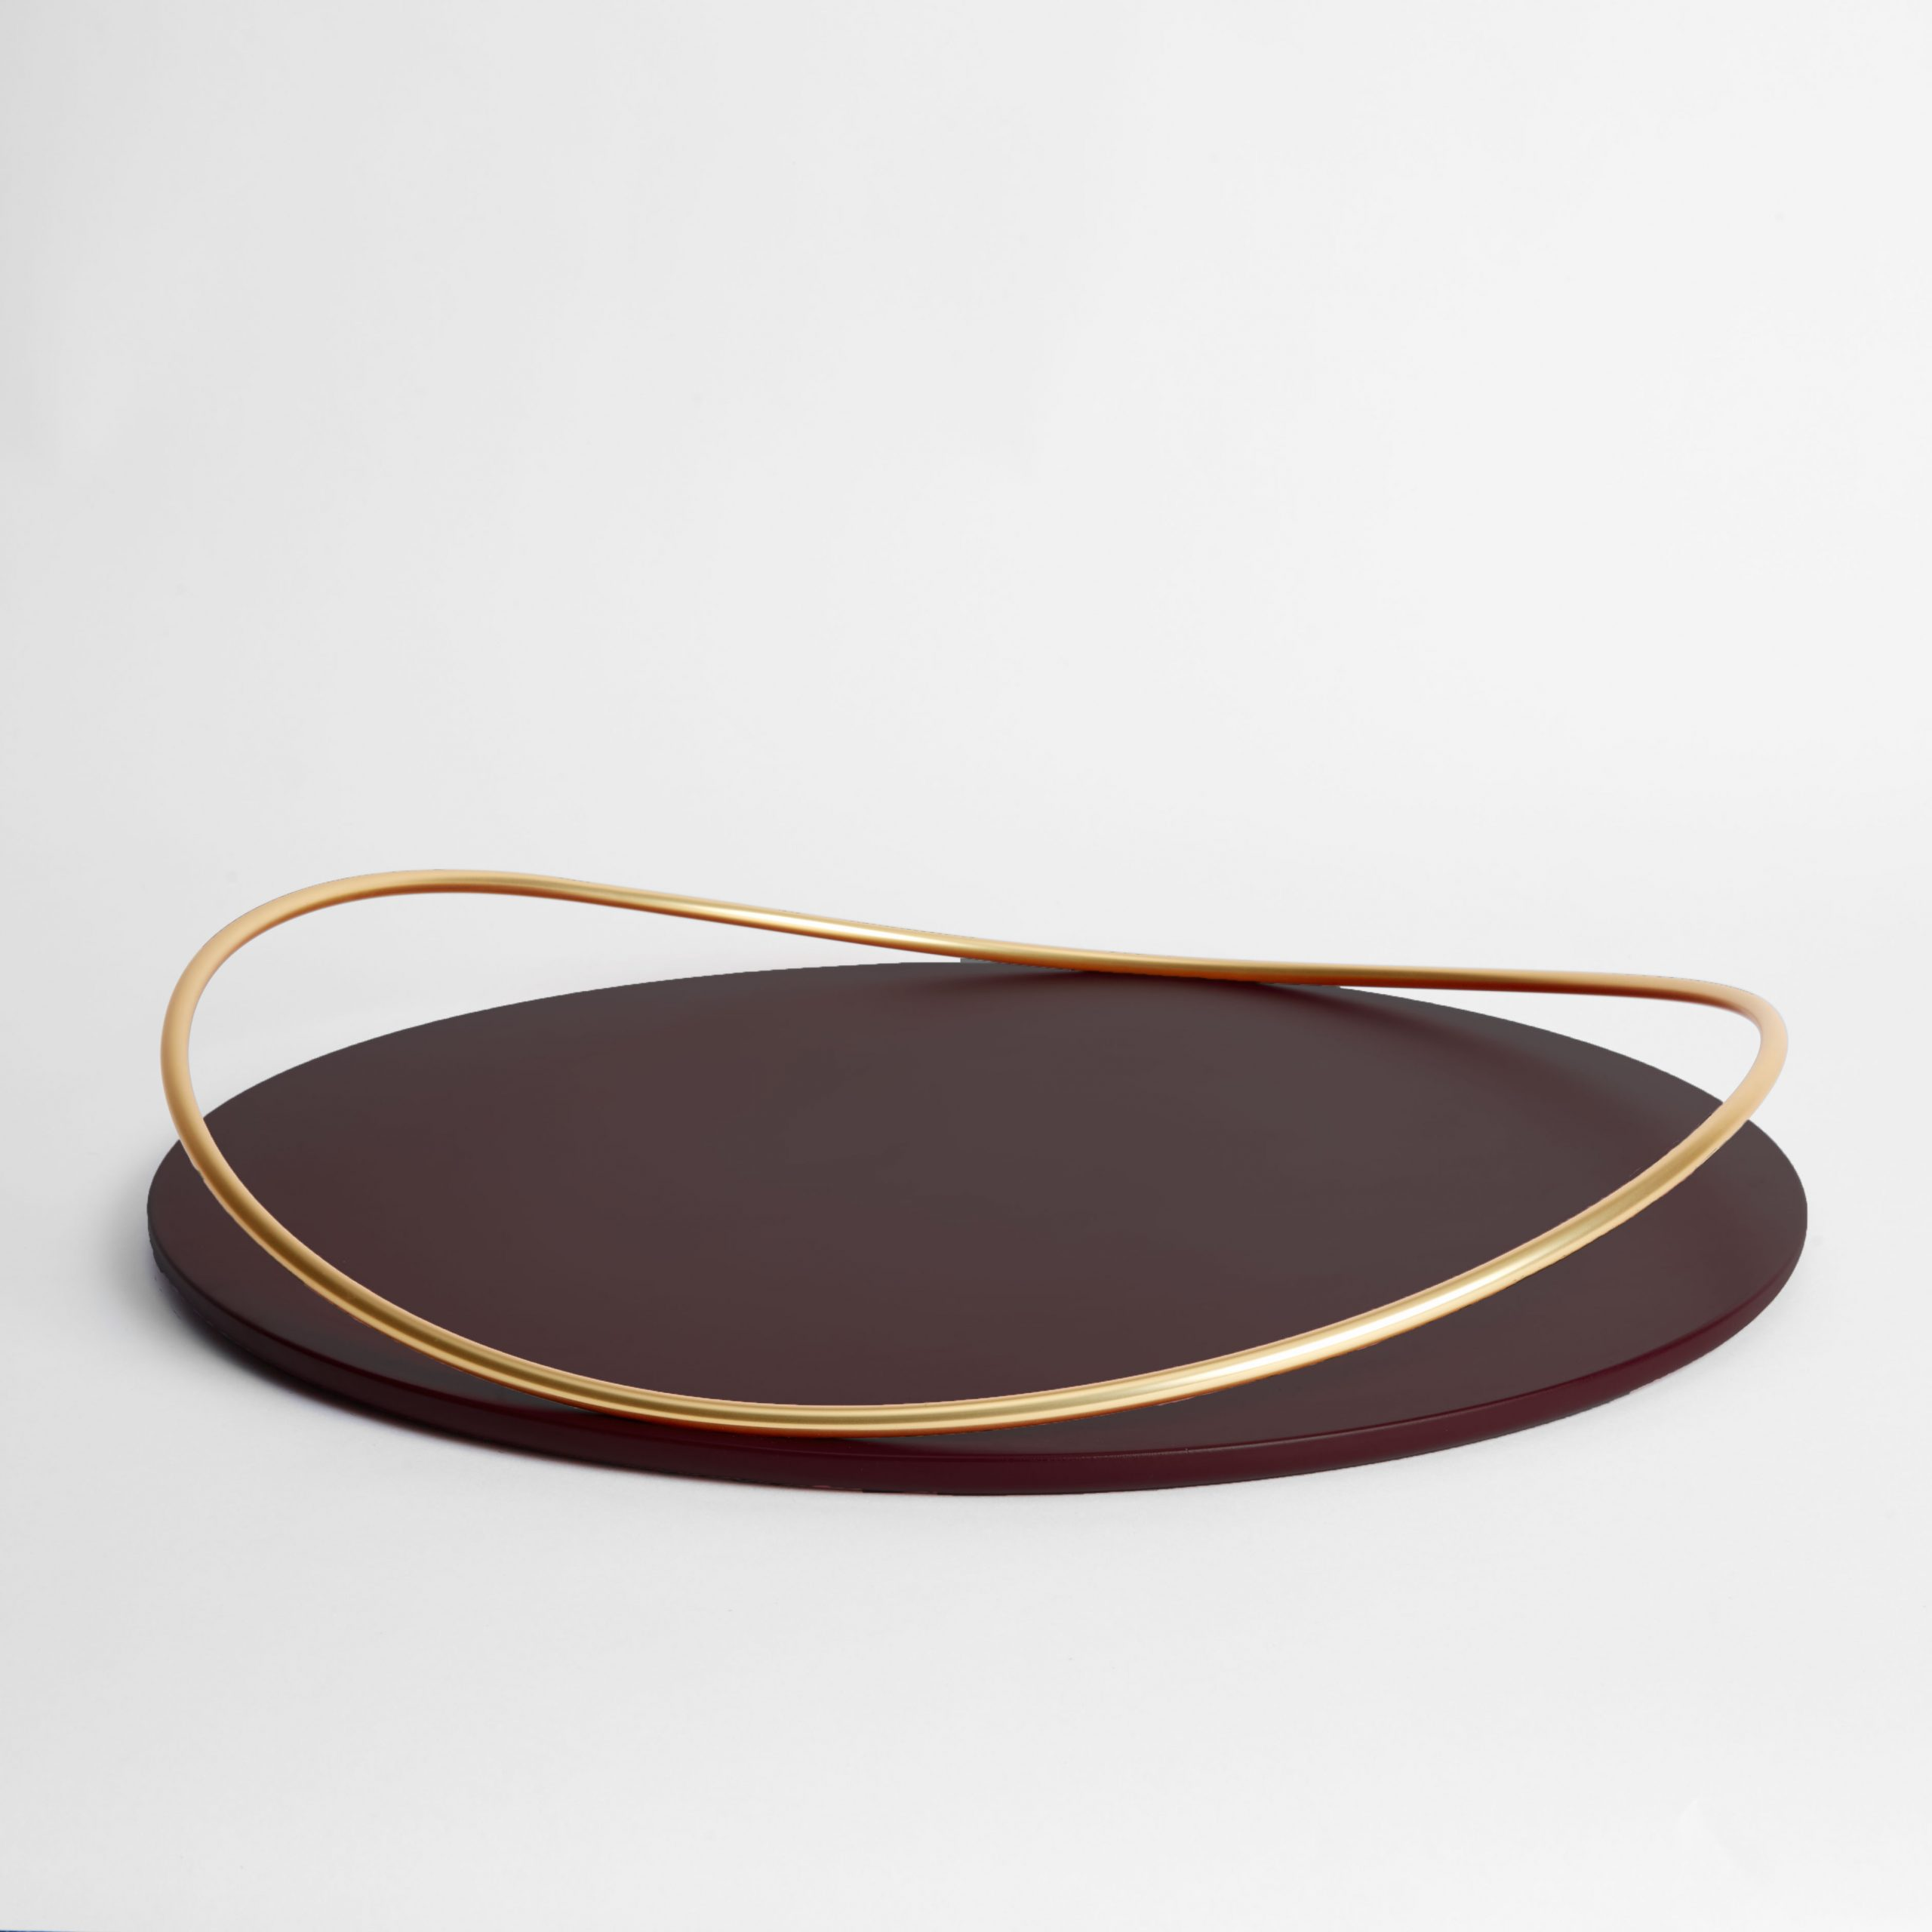 Touché e is one of our trays that are part of our accessories section